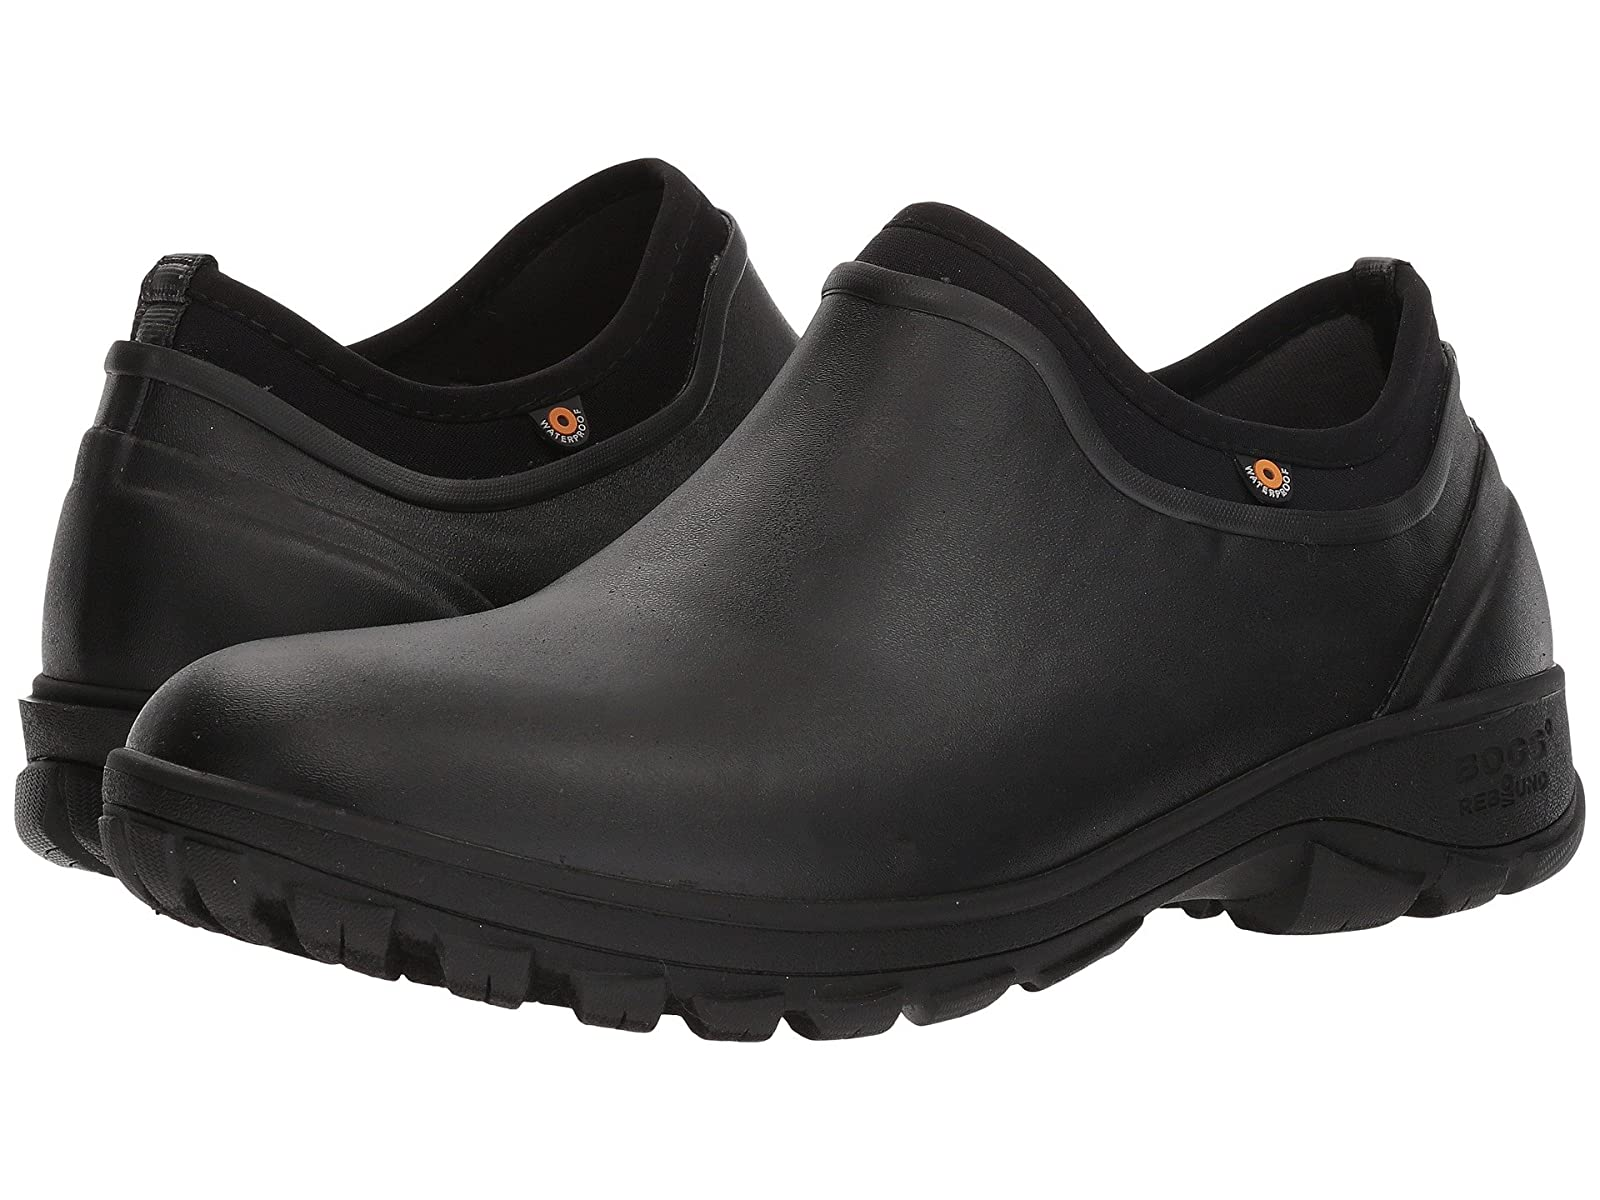 Bogs Sauvie Slip-OnAtmospheric grades have affordable shoes